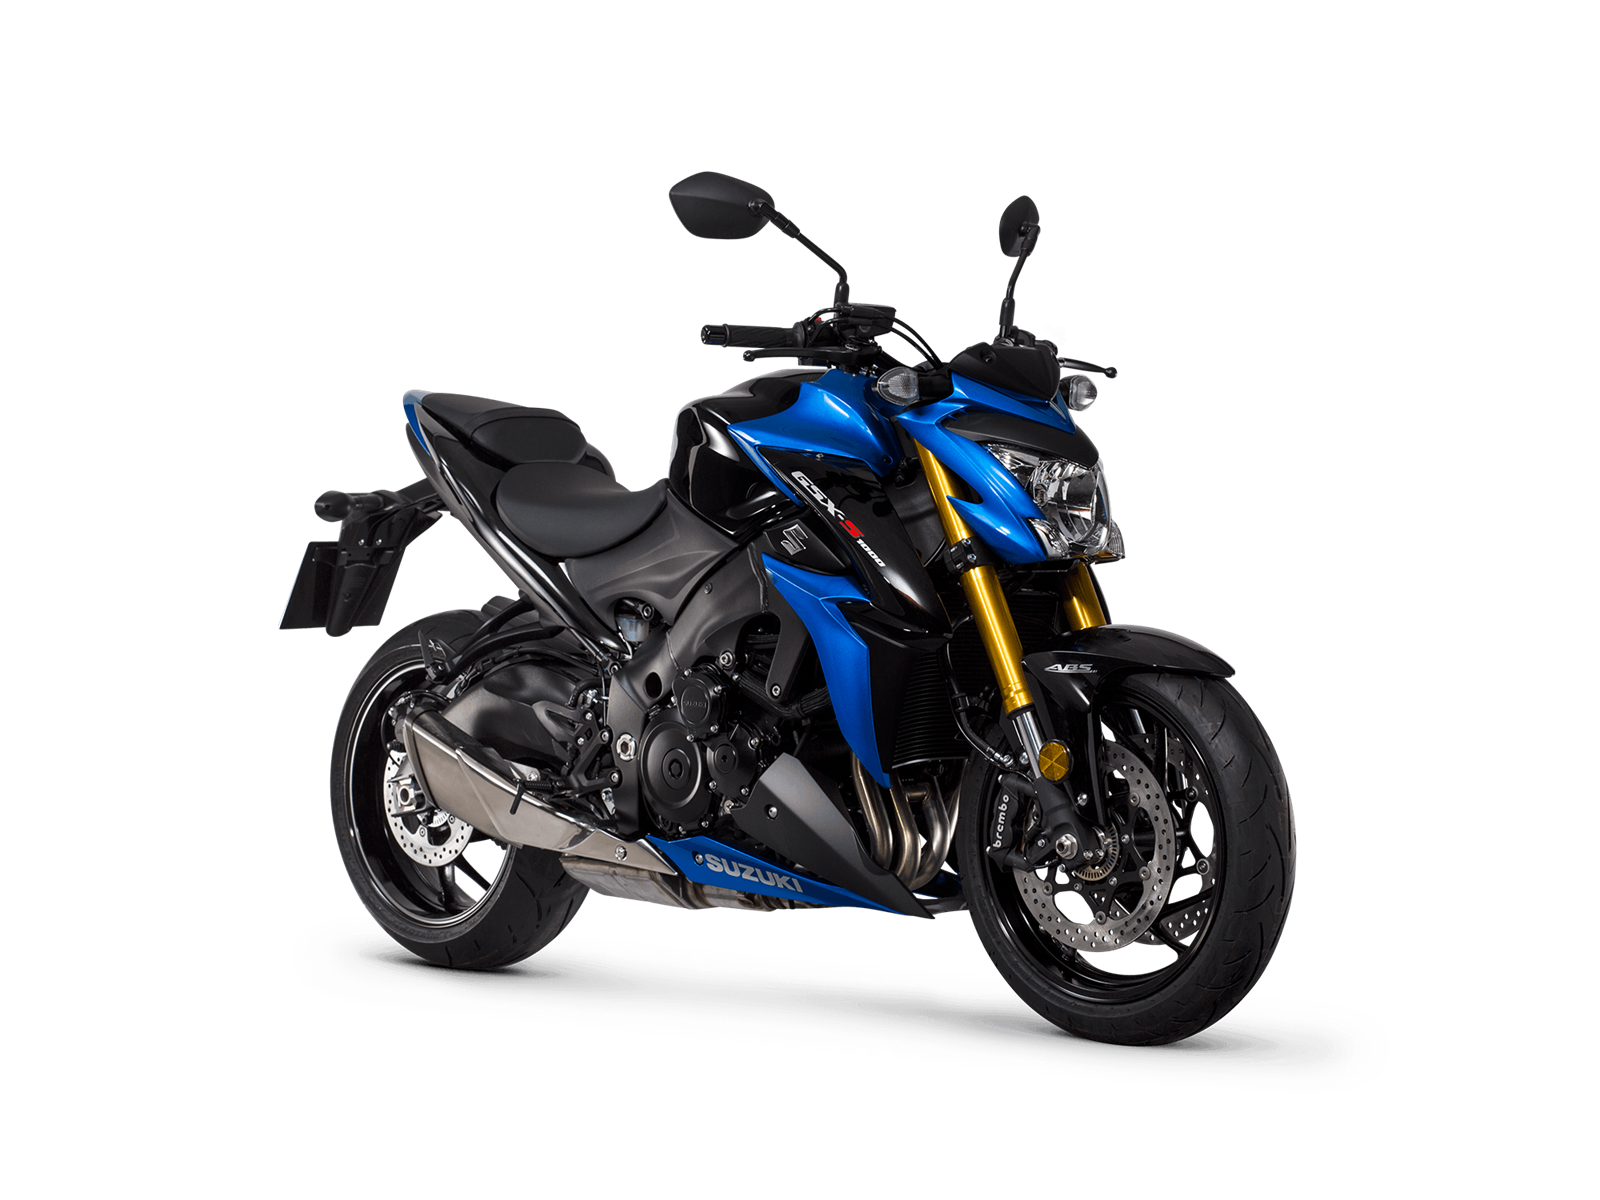 suzuki gsx s1000 suzuki bikes uk. Black Bedroom Furniture Sets. Home Design Ideas